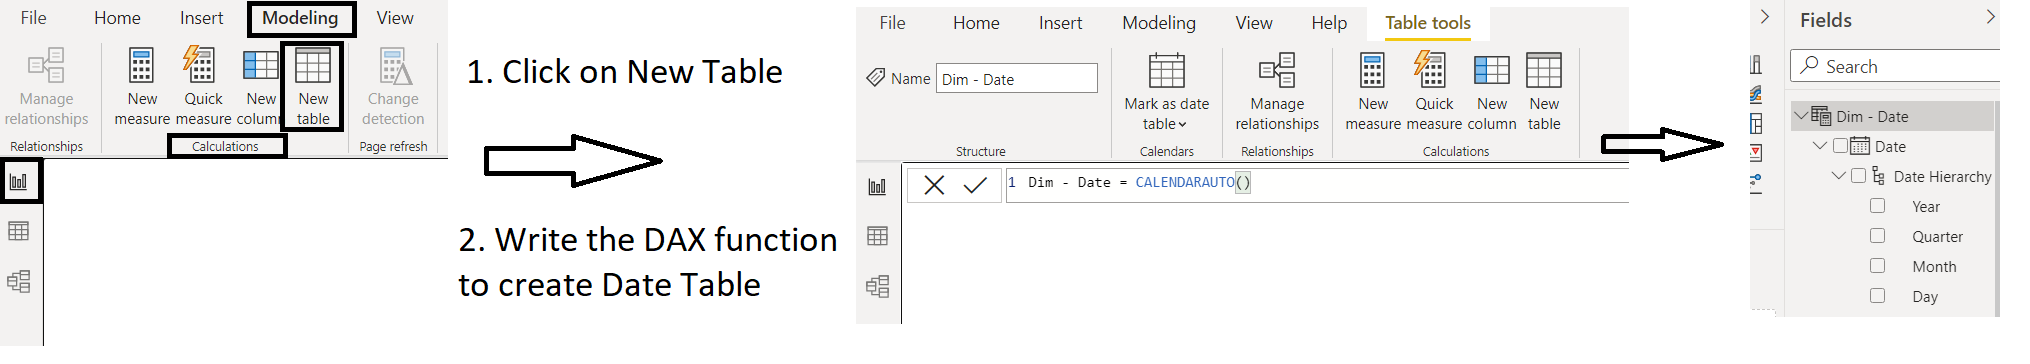 Date Table in Power BI using DAX